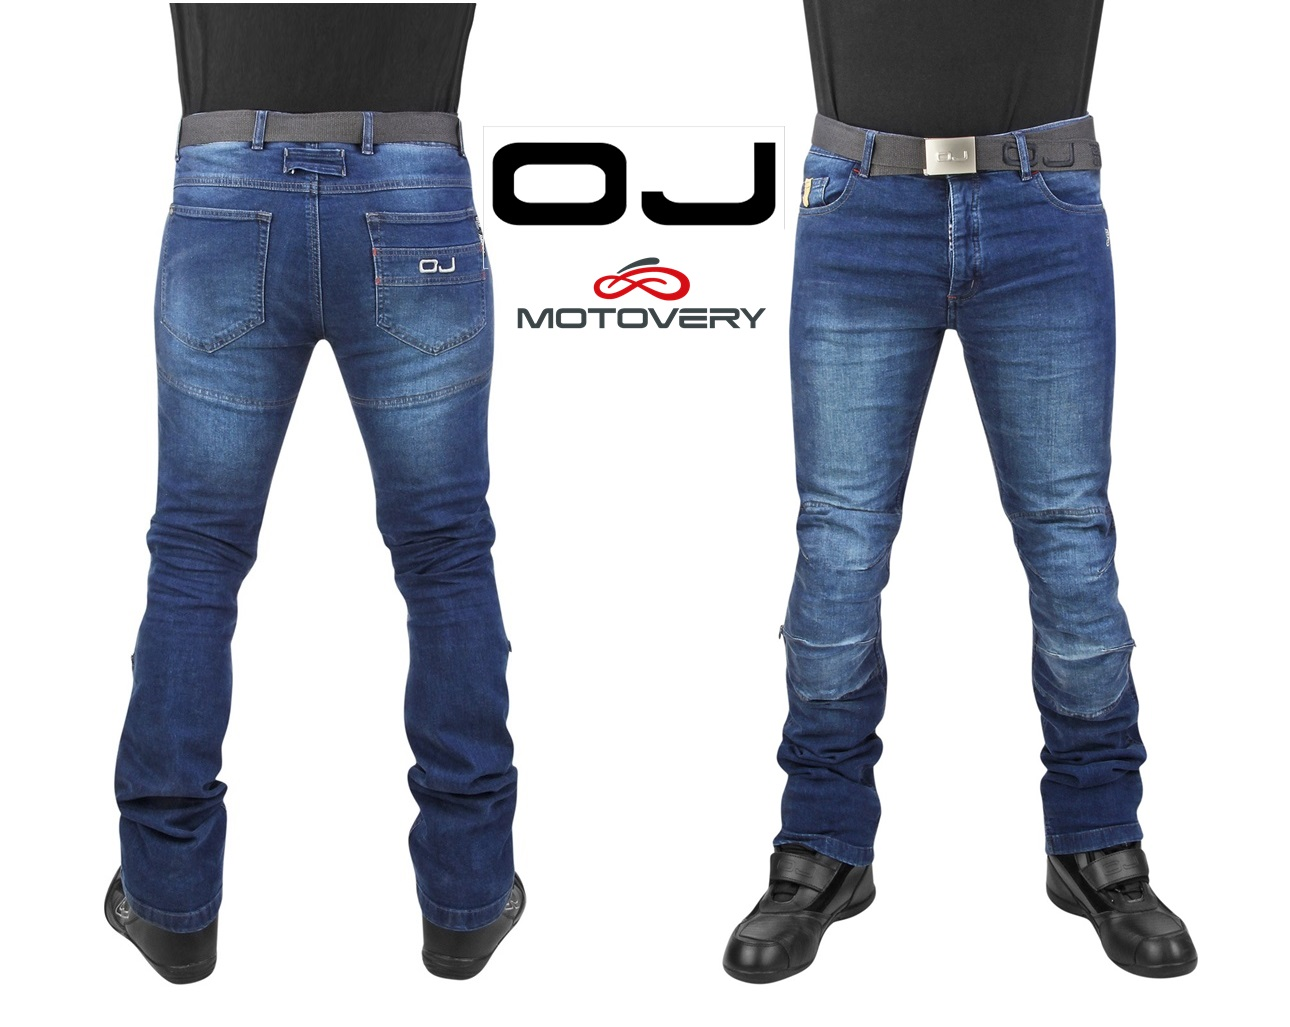 nuevos pantalones vaqueros para moto oj sole motovery tienda de motos elche alicante. Black Bedroom Furniture Sets. Home Design Ideas